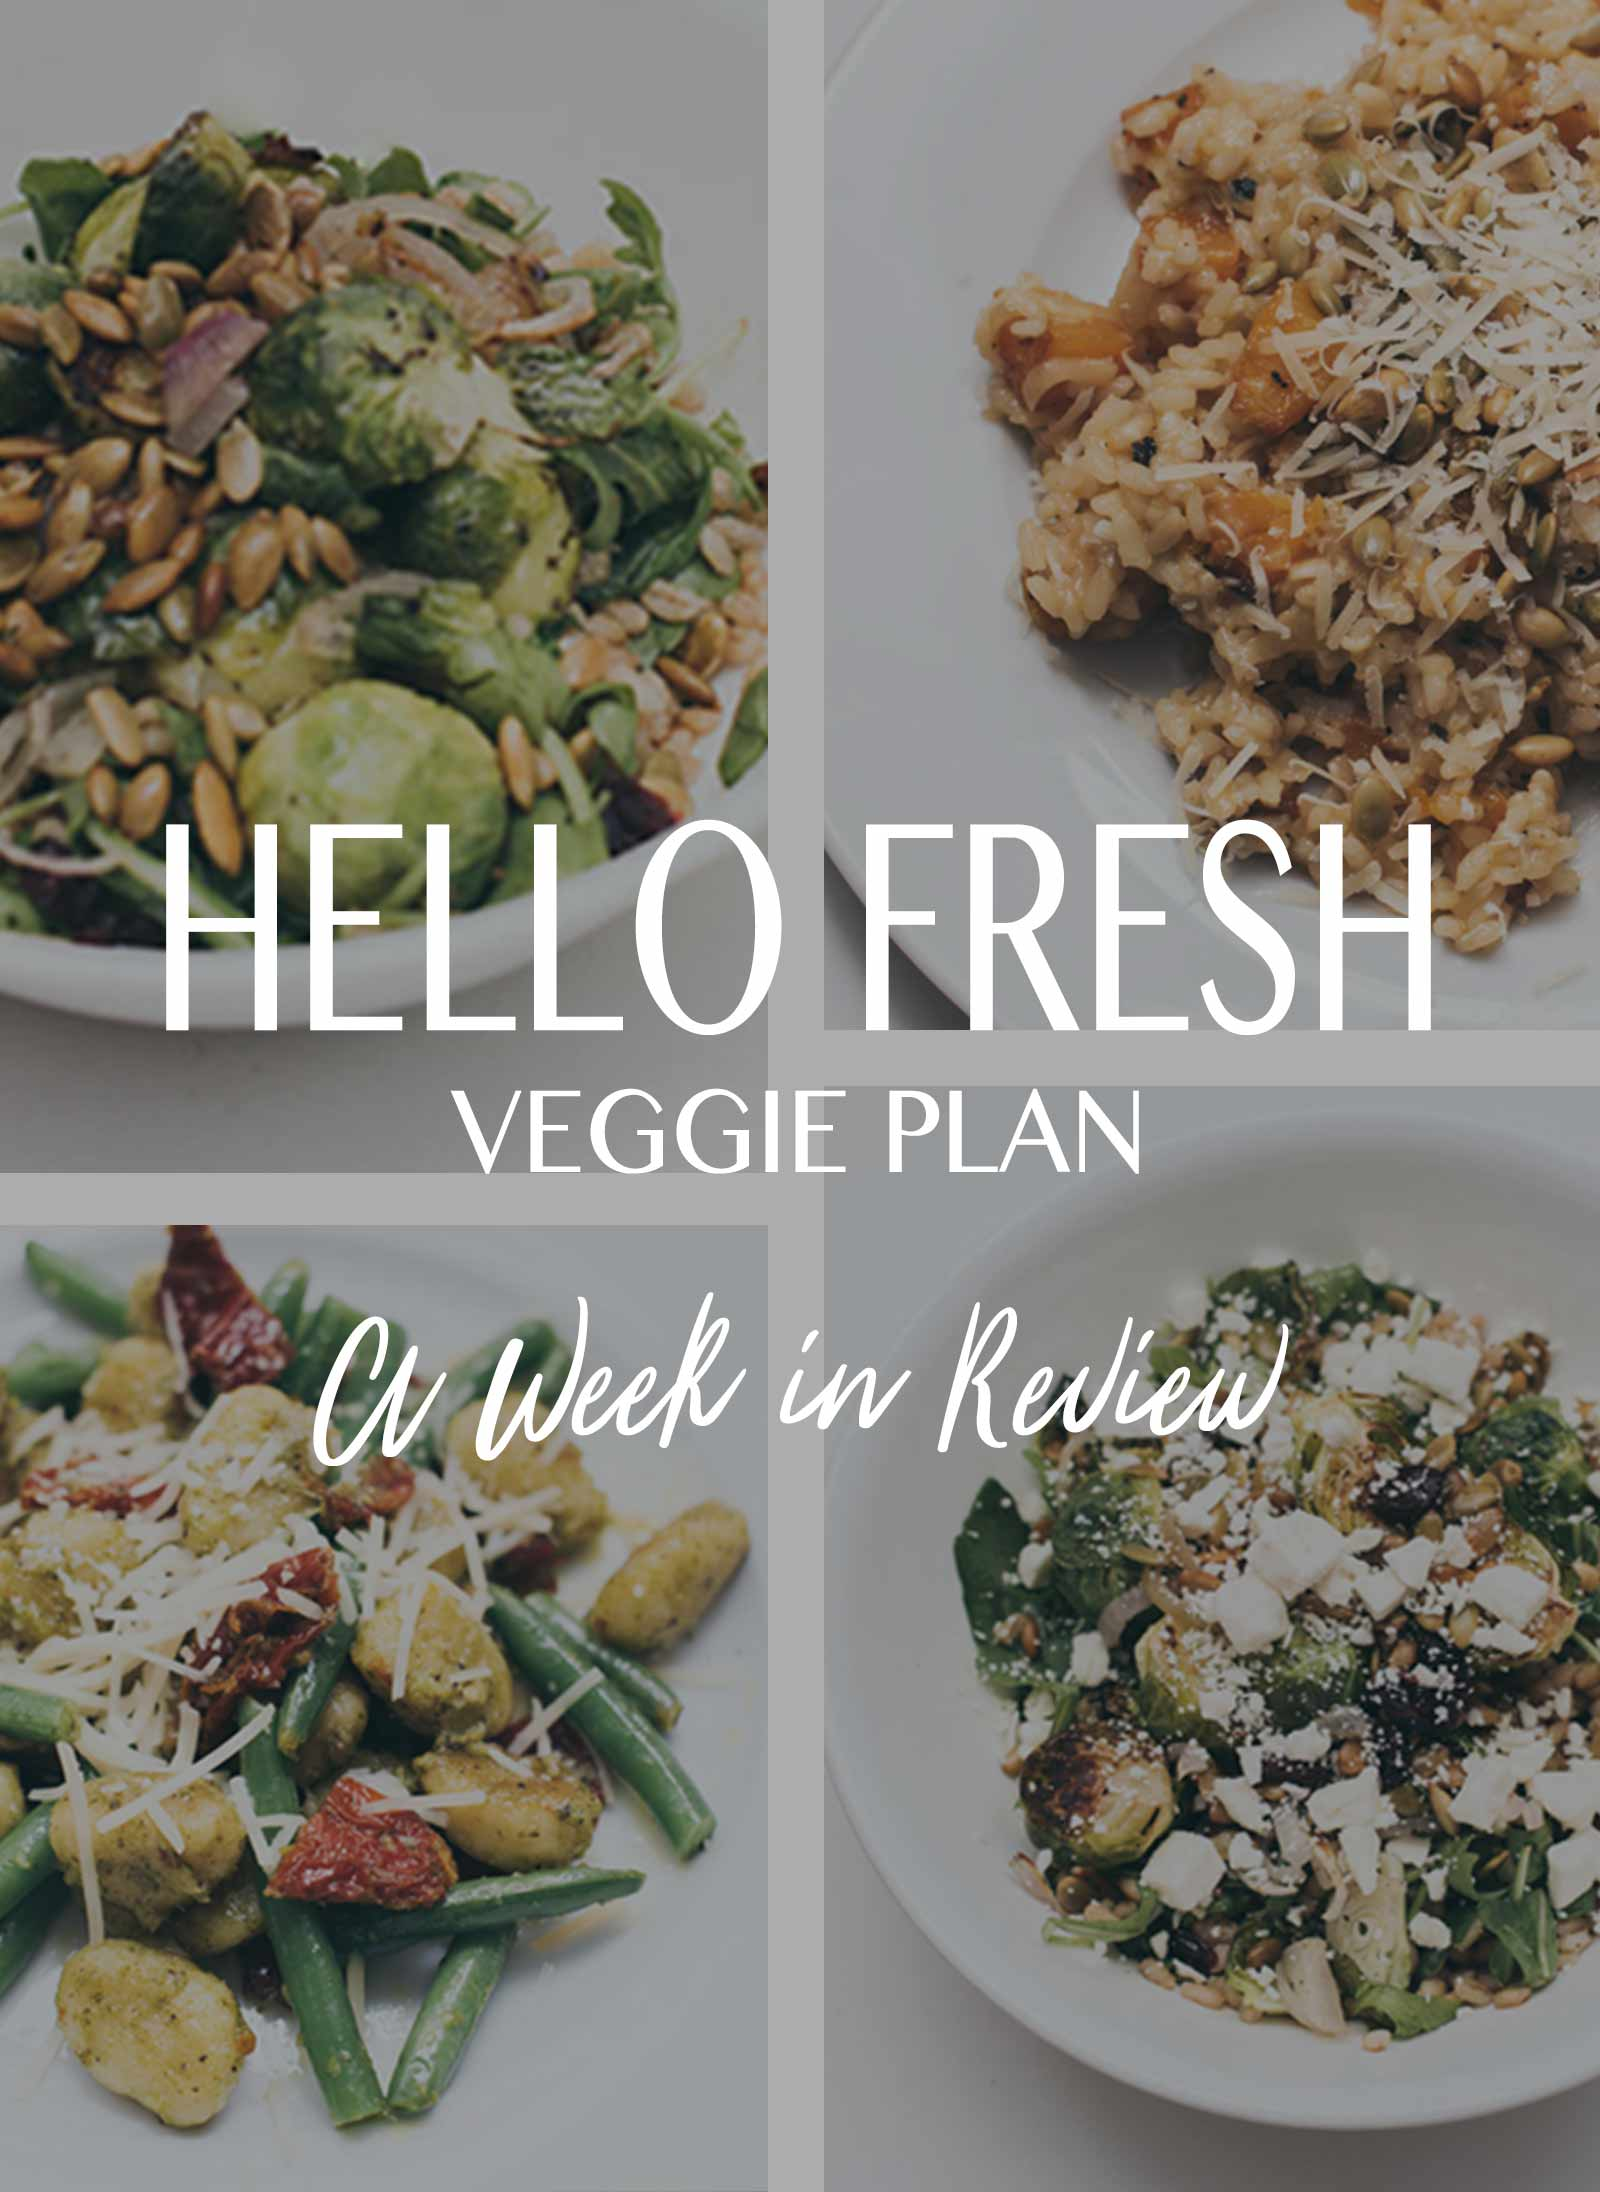 Black Friday Hellofresh Deal April 2020